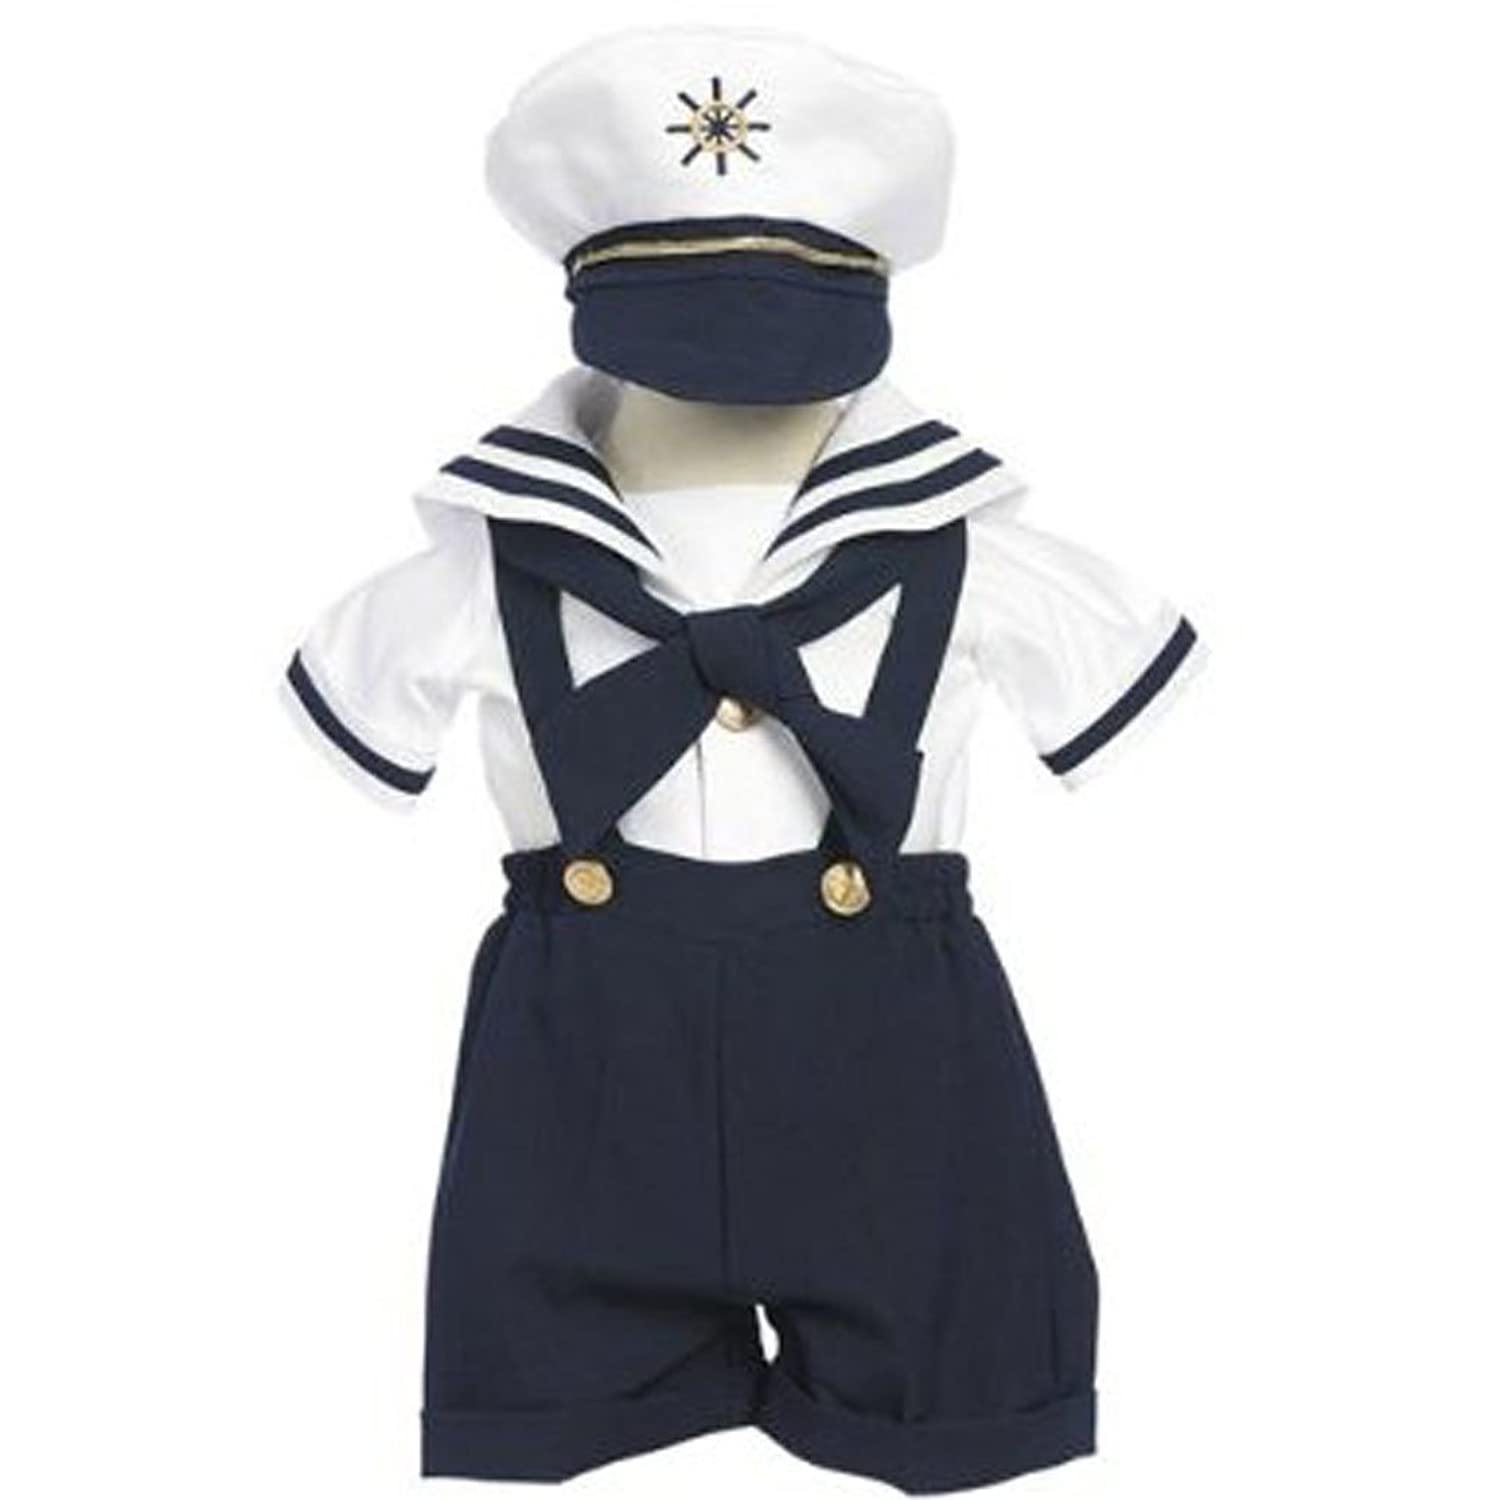 1930s Childrens Fashion: Girls, Boys, Toddler, Baby Costumes Classykidzshop Navy Sailor Boy Shirt Shorts Tie and Hat (Baby) $30.00 AT vintagedancer.com